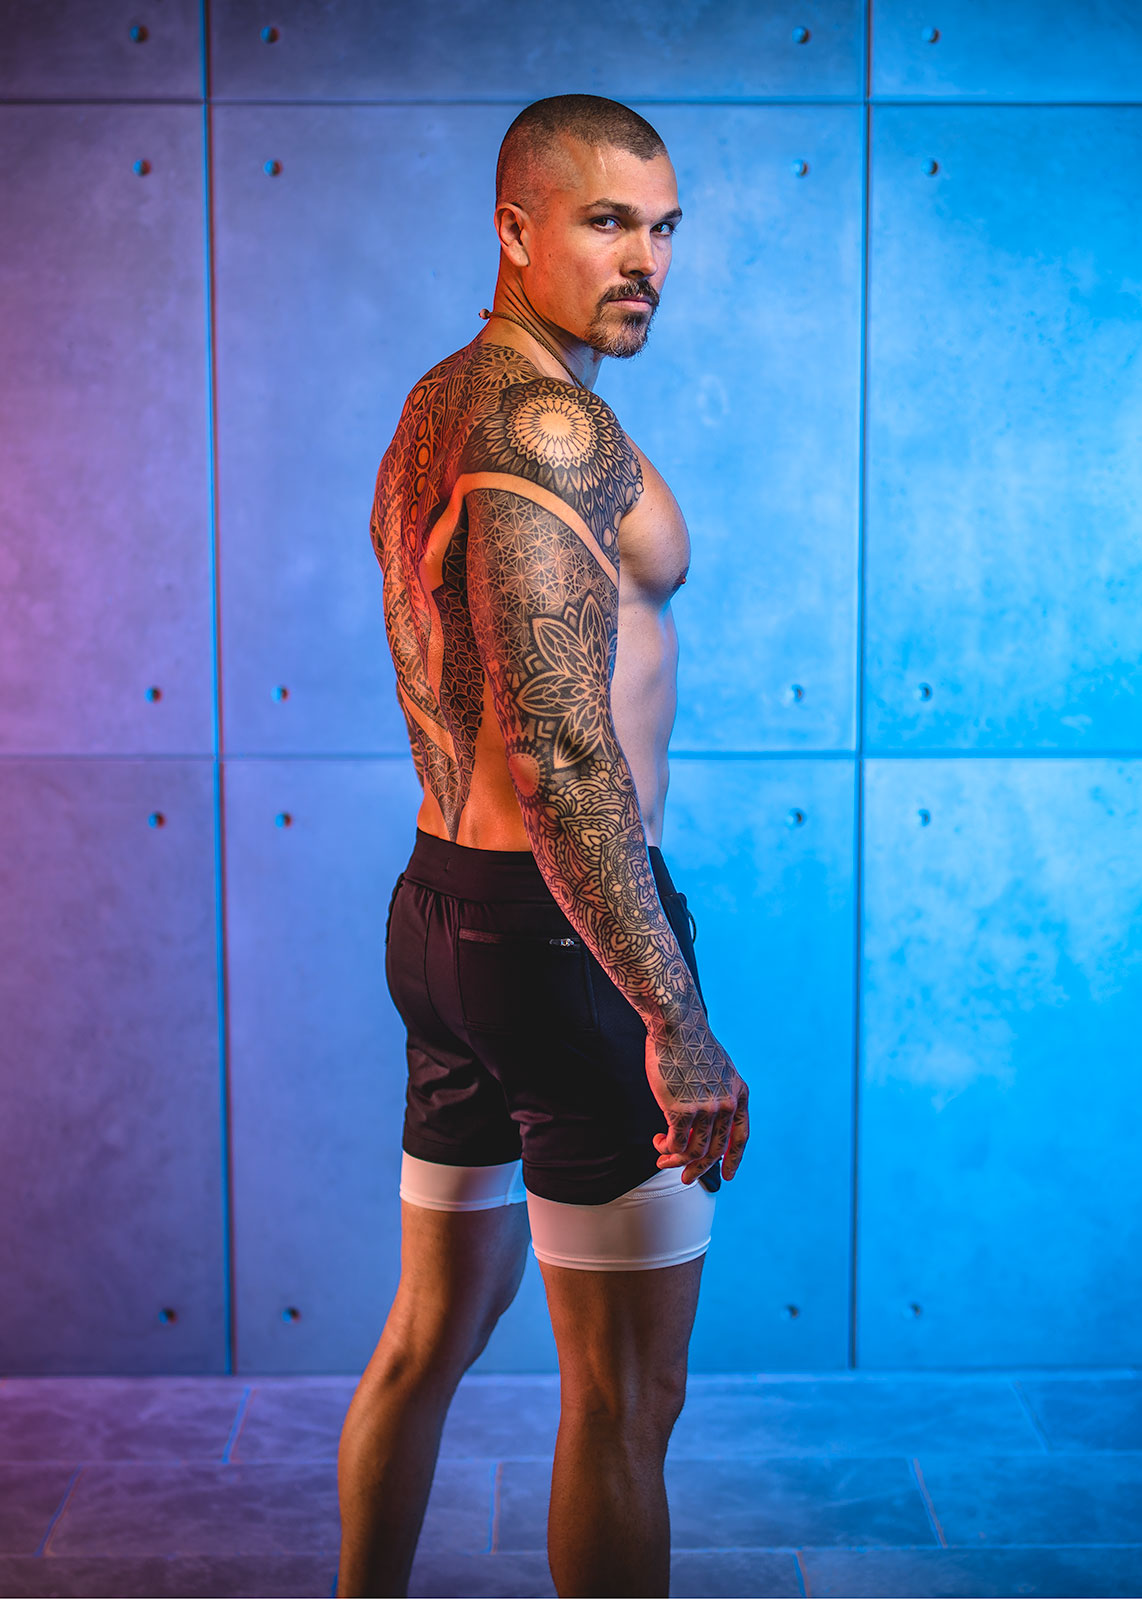 Darren Natoni standing shirtless against a concrete wall glowing with pink and blue lighting, wearing black shorts with white tights sticking out the bottom, displaying a full sacred geometry tattoo sleeve extending onto his right hand